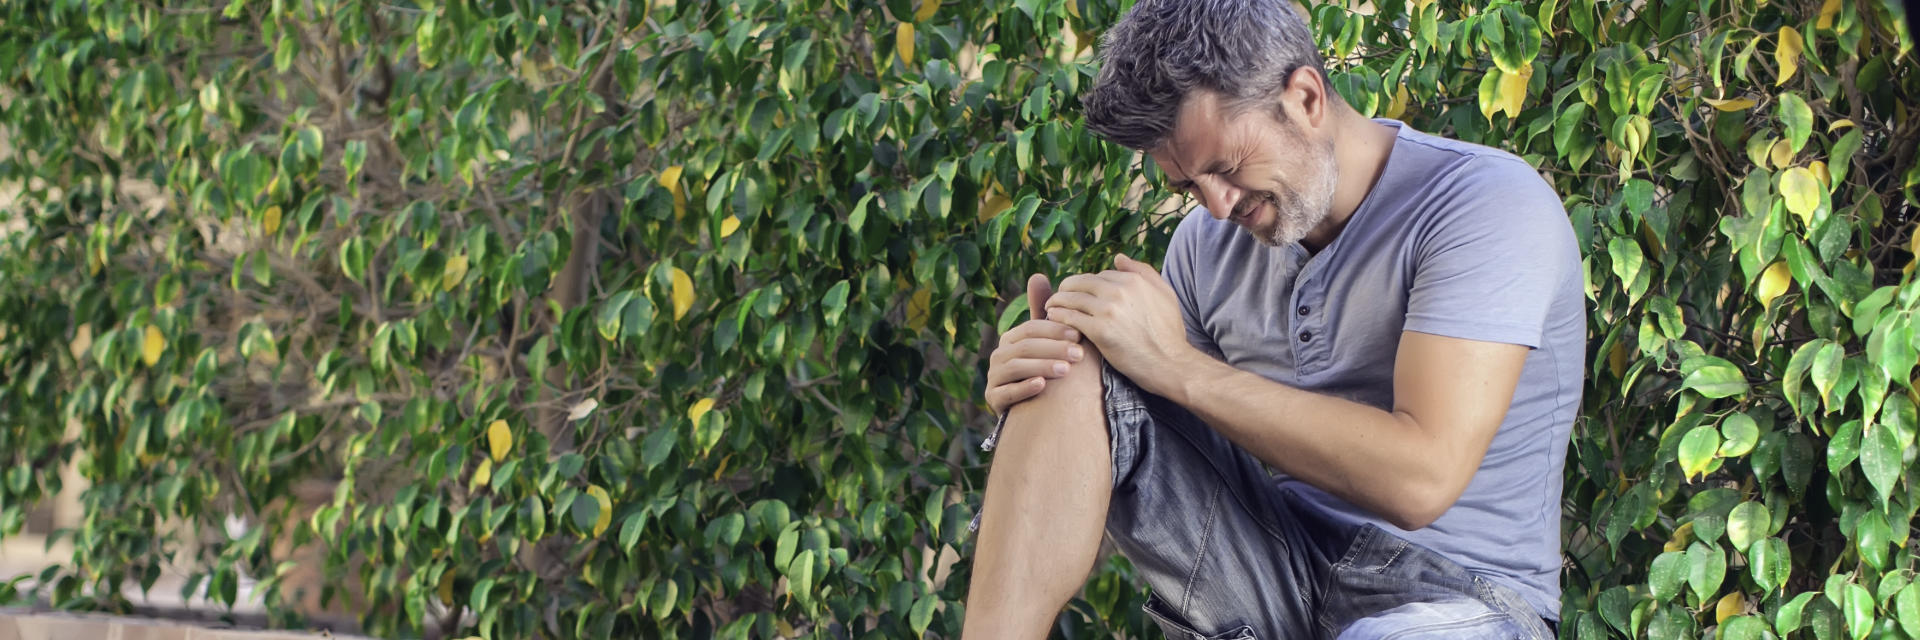 A man with severe knee pain touching the painful knee.